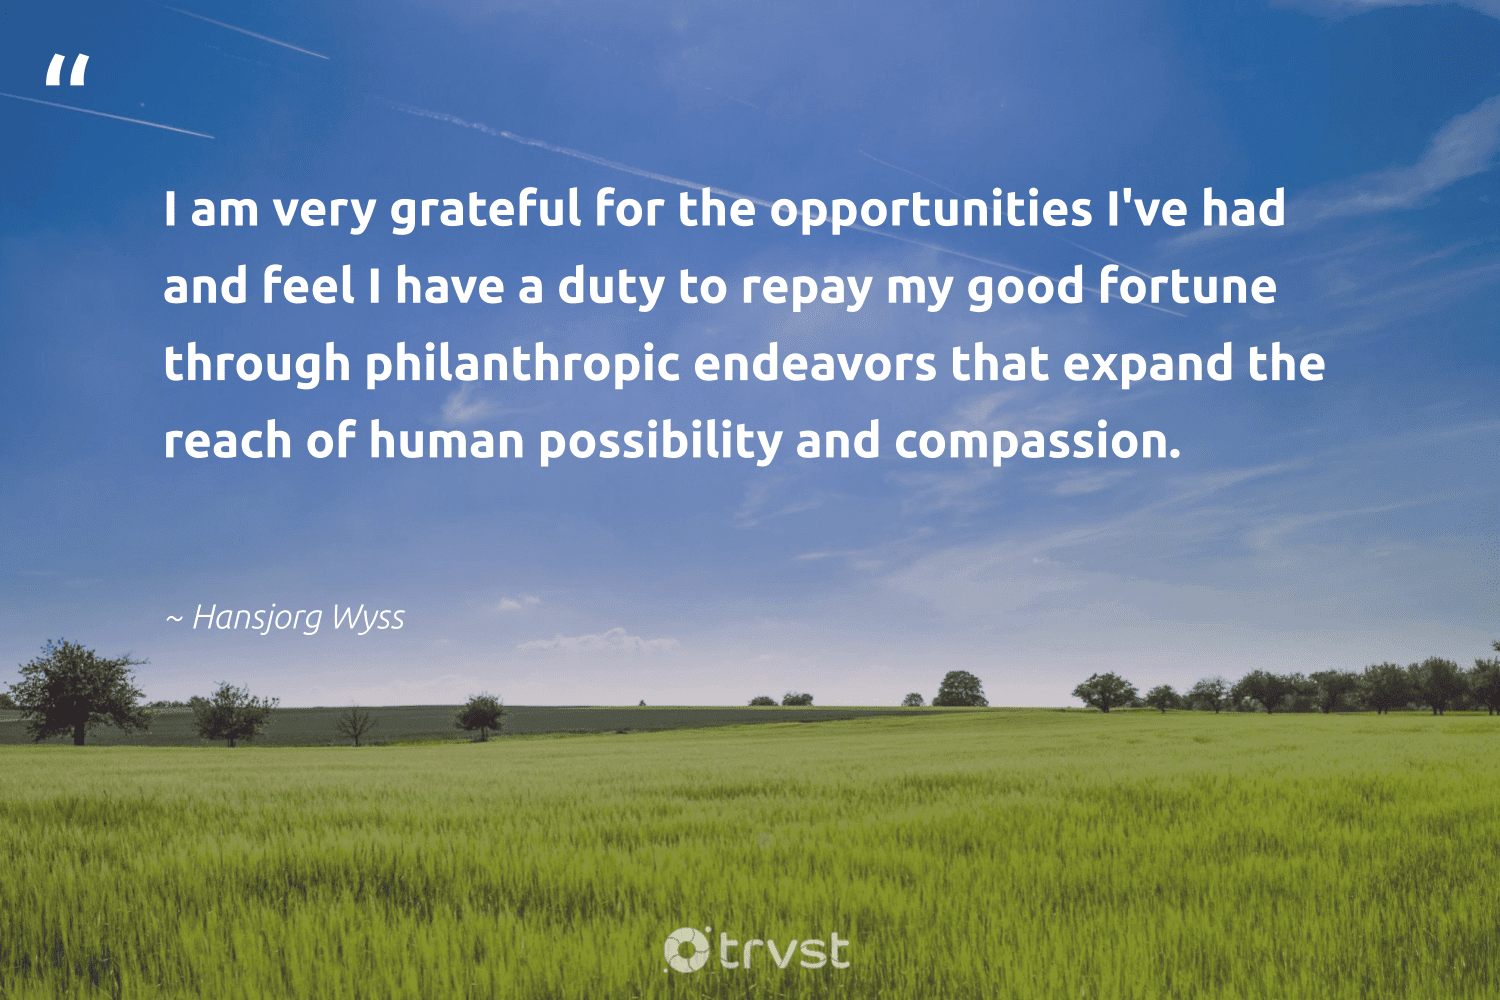 """""""I am very grateful for the opportunities I've had and feel I have a duty to repay my good fortune through philanthropic endeavors that expand the reach of human possibility and compassion.""""  - Hansjorg Wyss #trvst #quotes #philanthropy #philanthropic #itscooltobekind #giveforthefuture #planetearthfirst #changemakers #togetherwecan #socialchange #beinspired #dogood"""